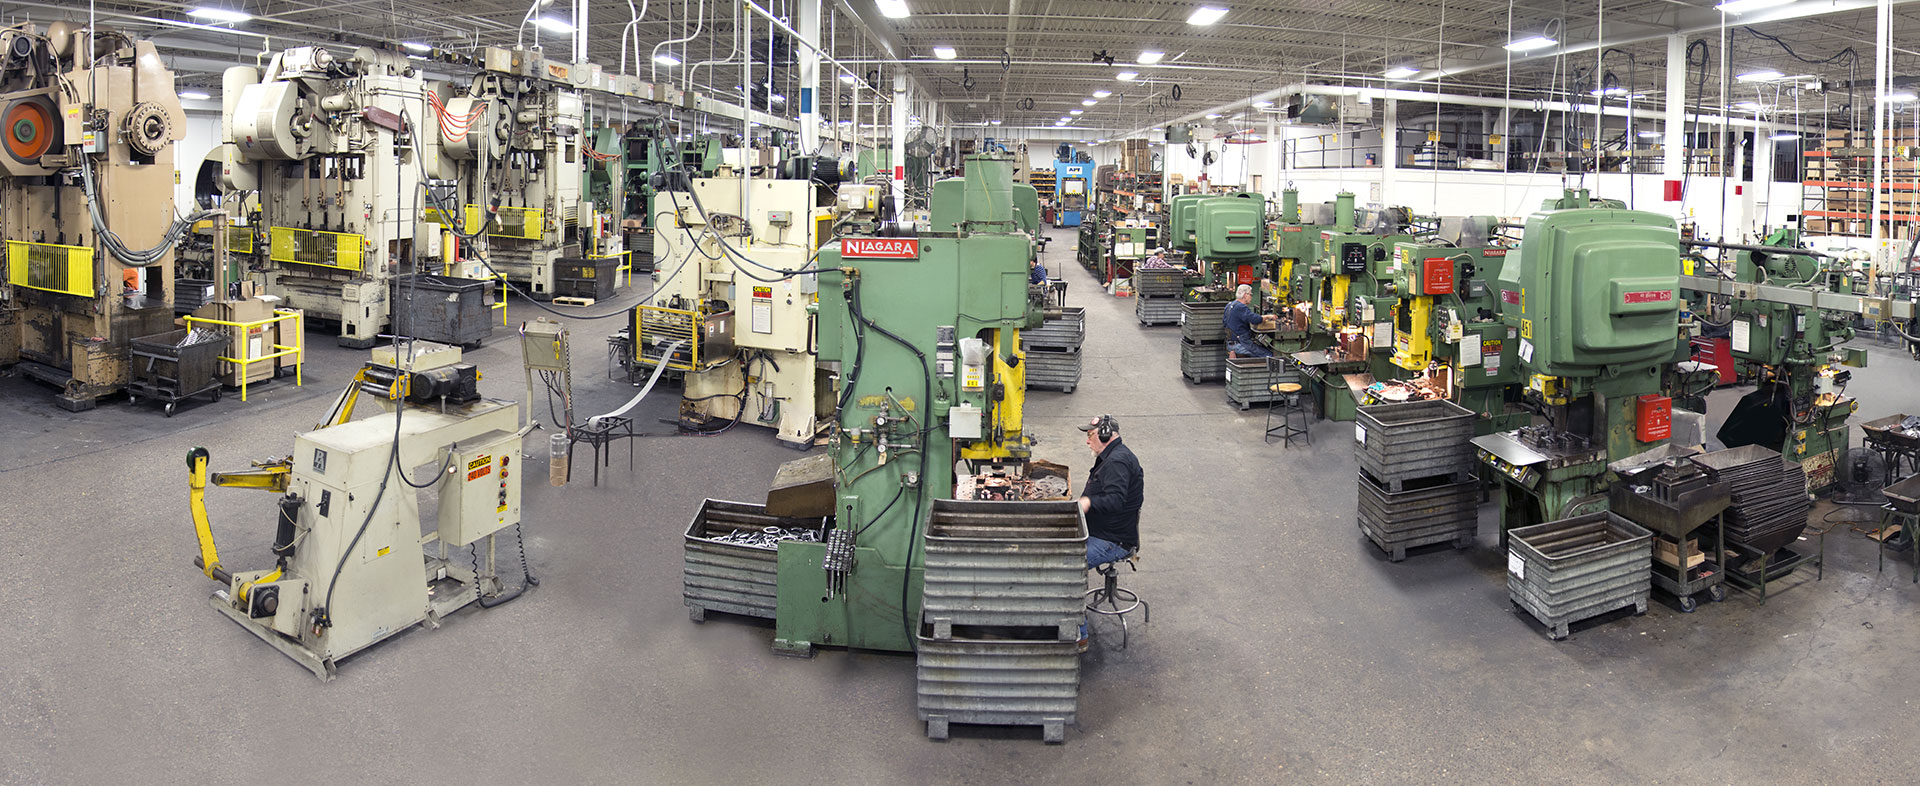 vast line of presses